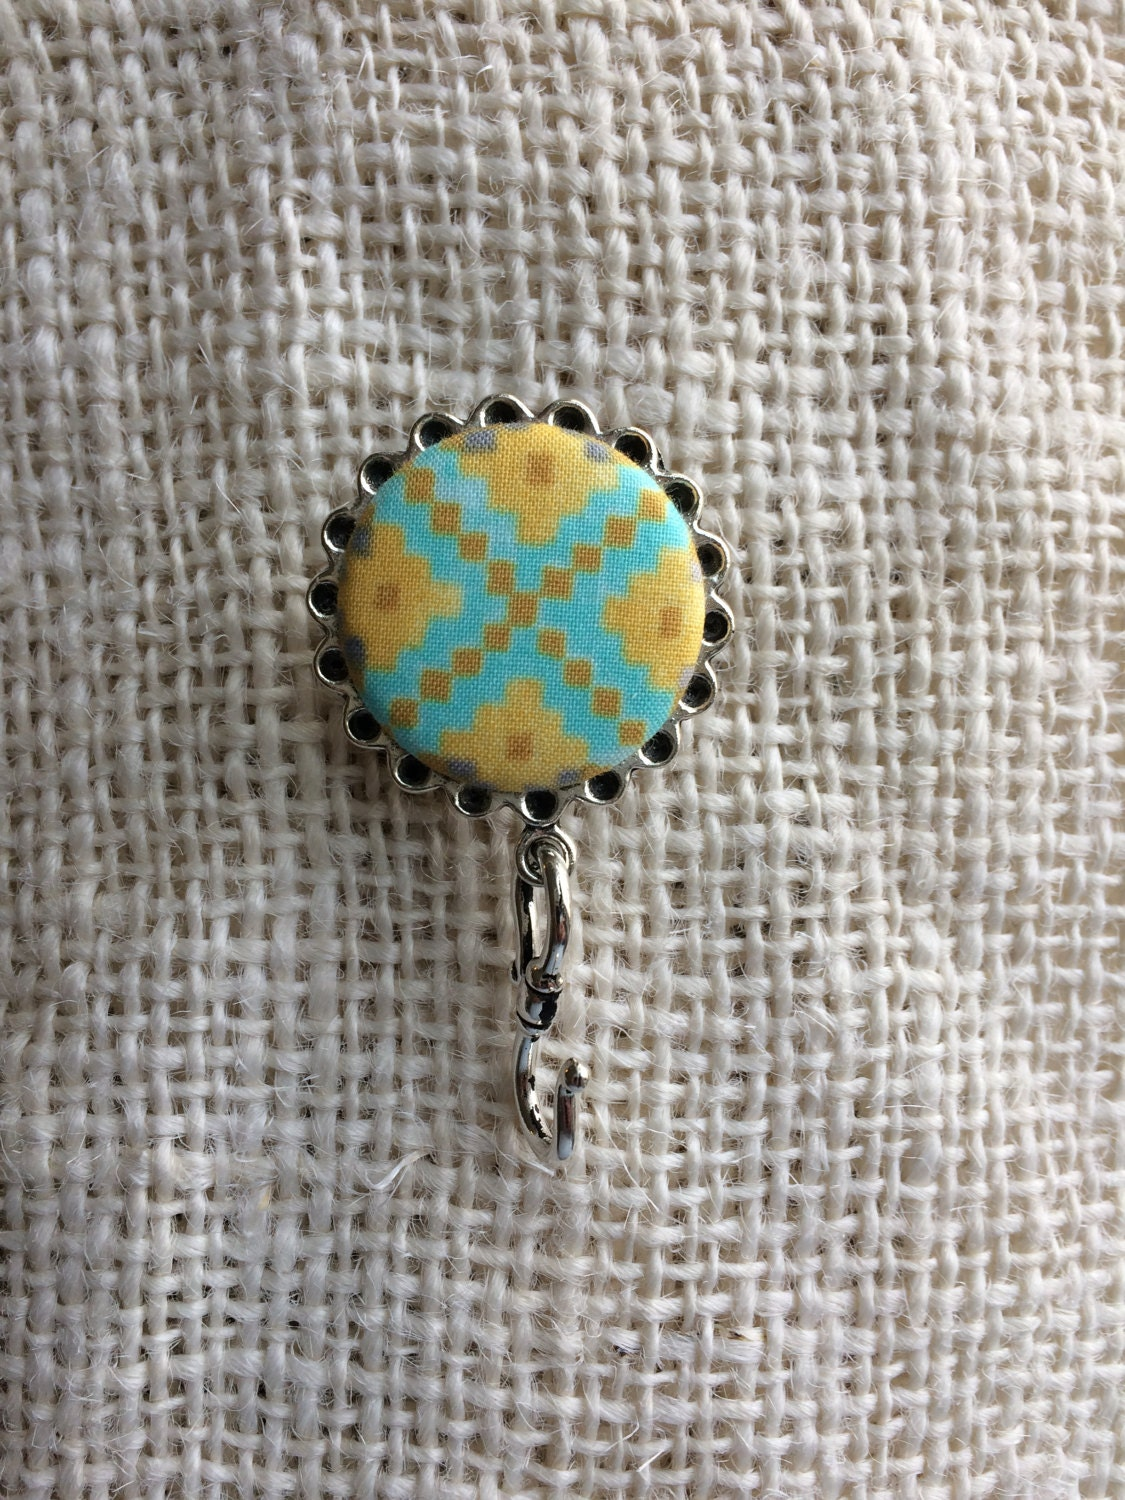 Knitting Pin Fabric Turquoise/yellow- Magnetic Knitting Pin for Portuguese Knitting